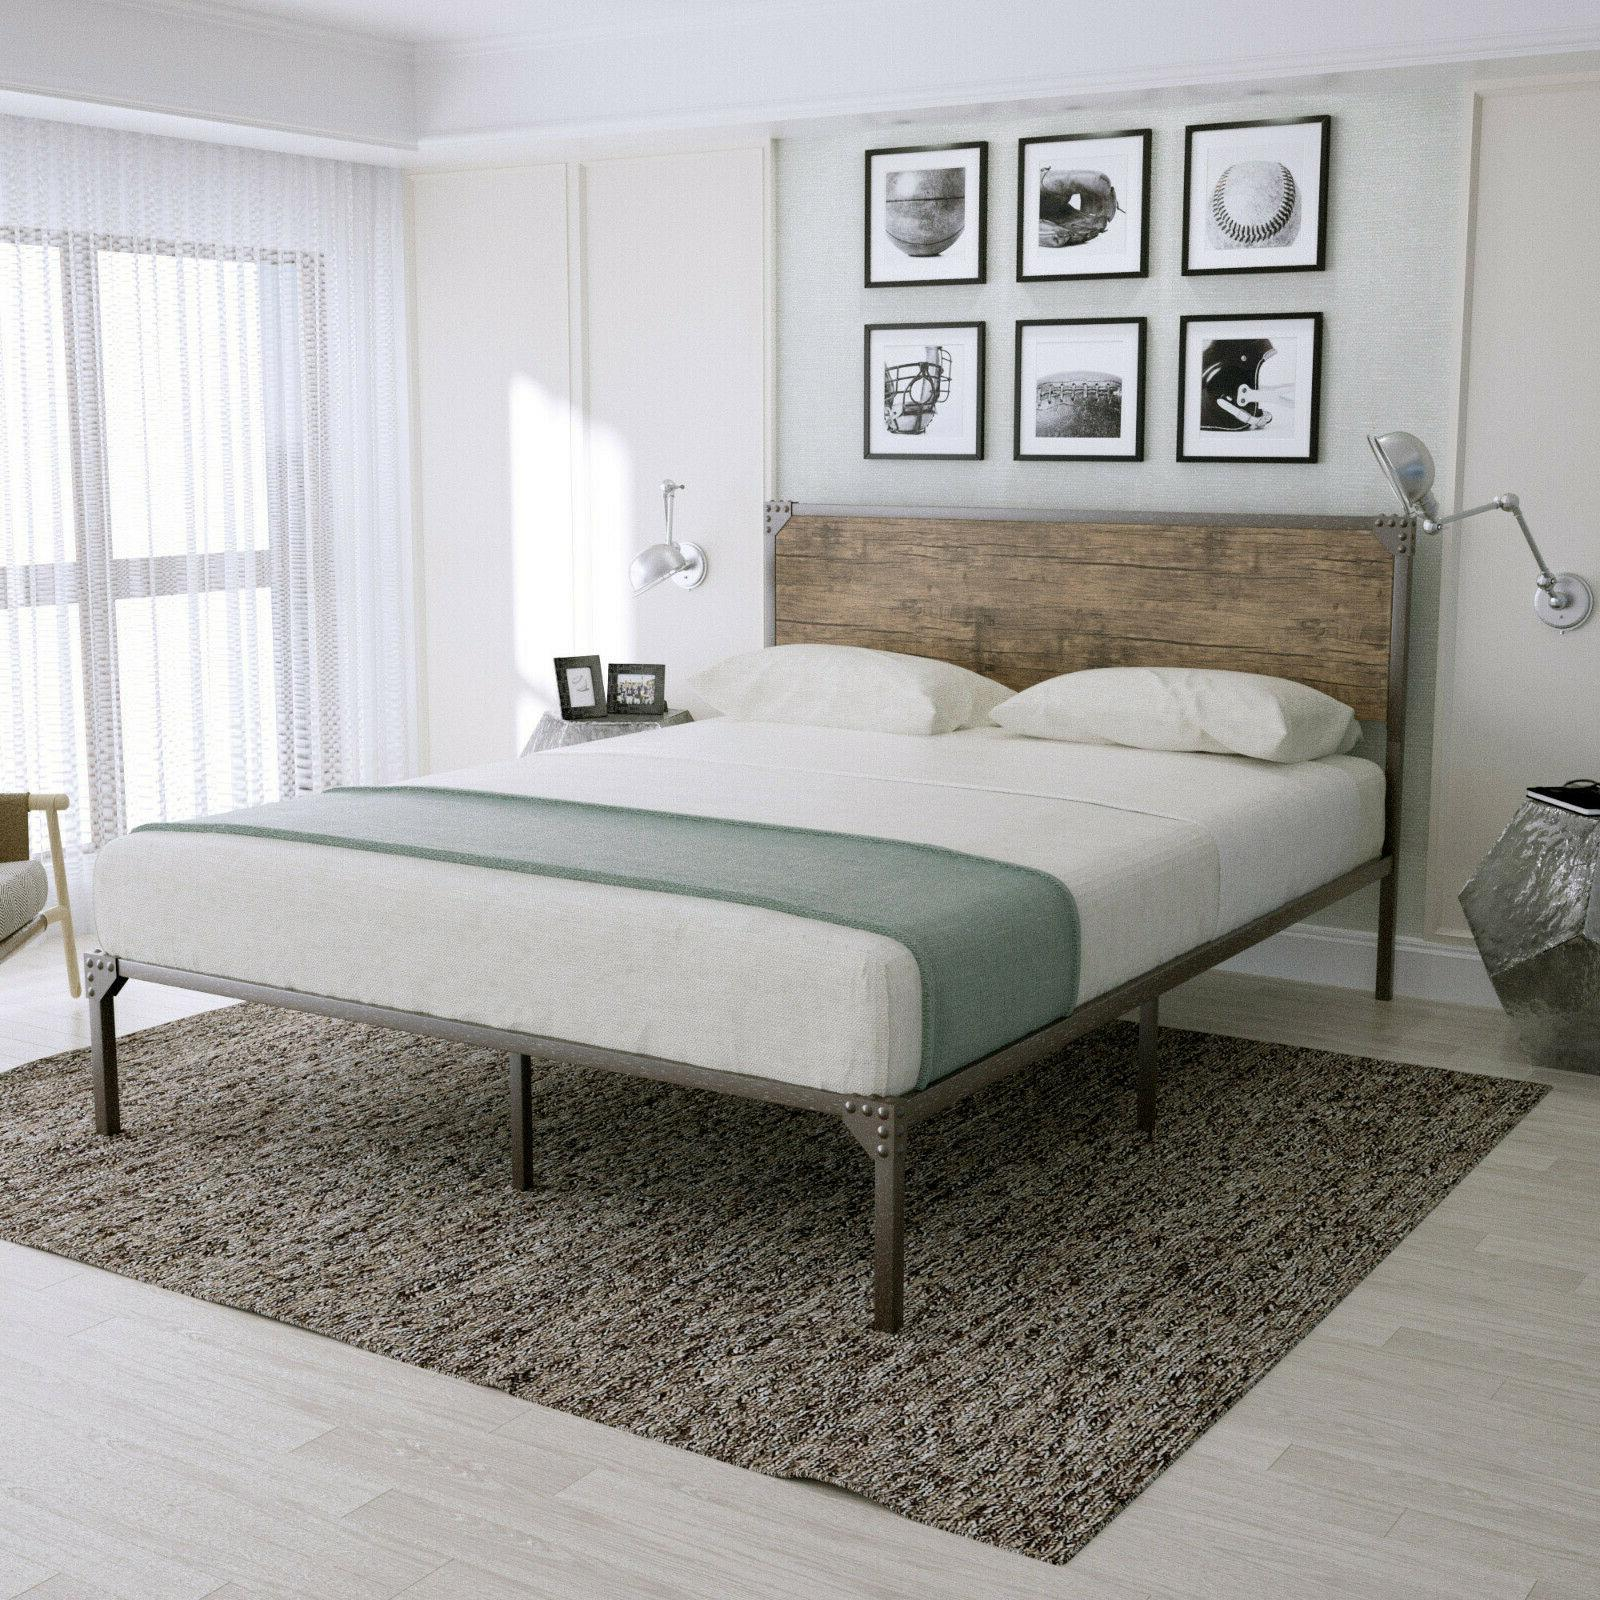 Full Metal Bed Frame with Style Design Headboard